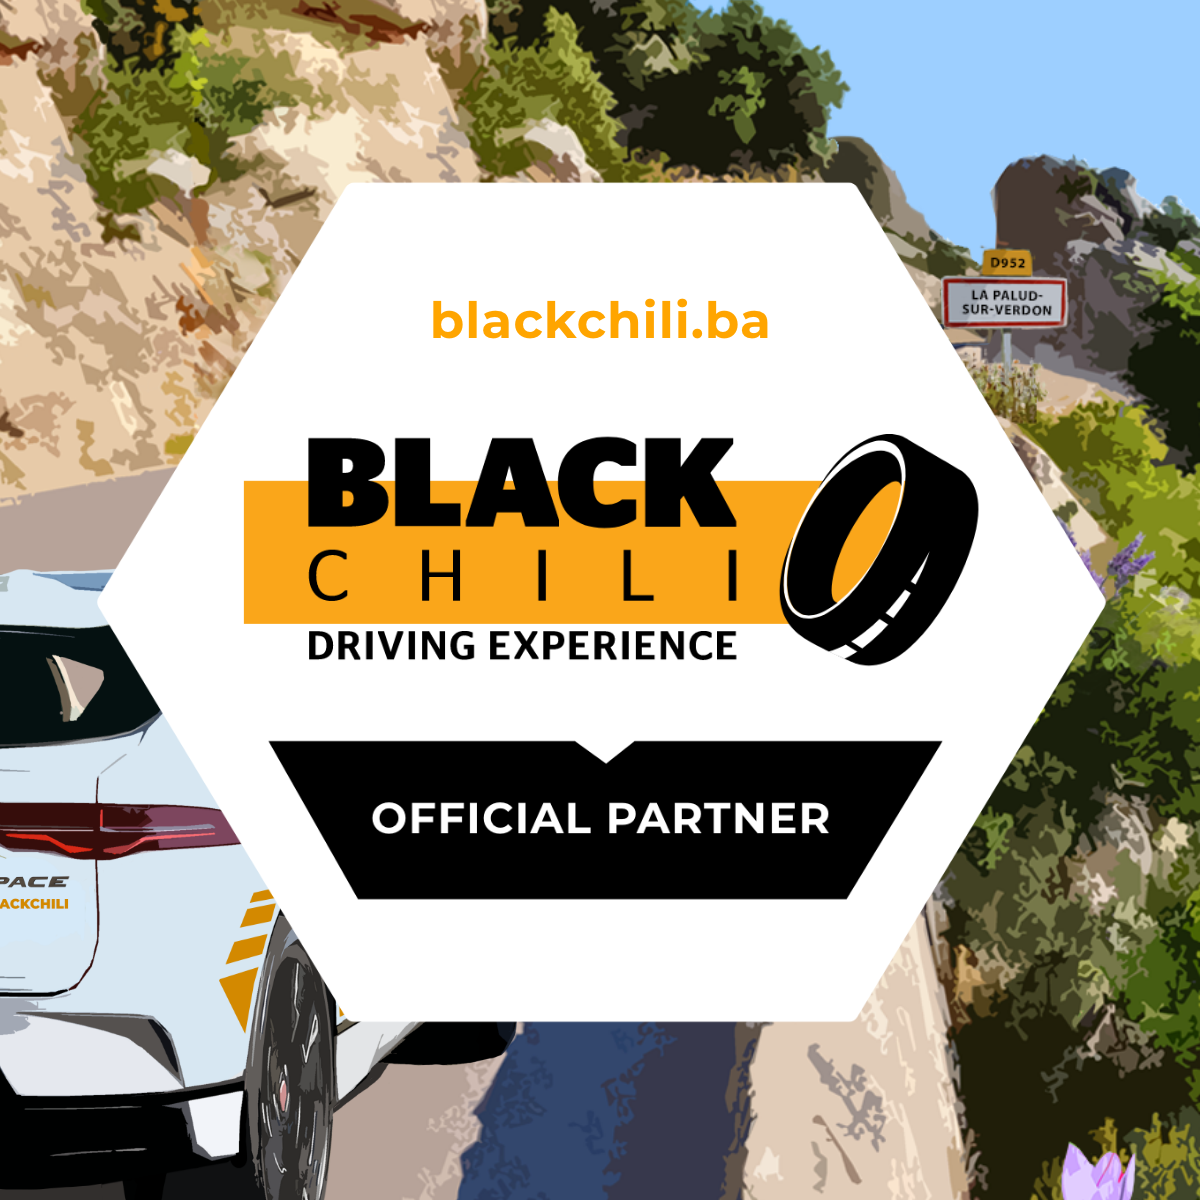 BLACKCHILI DRIVING EXPERIENCE